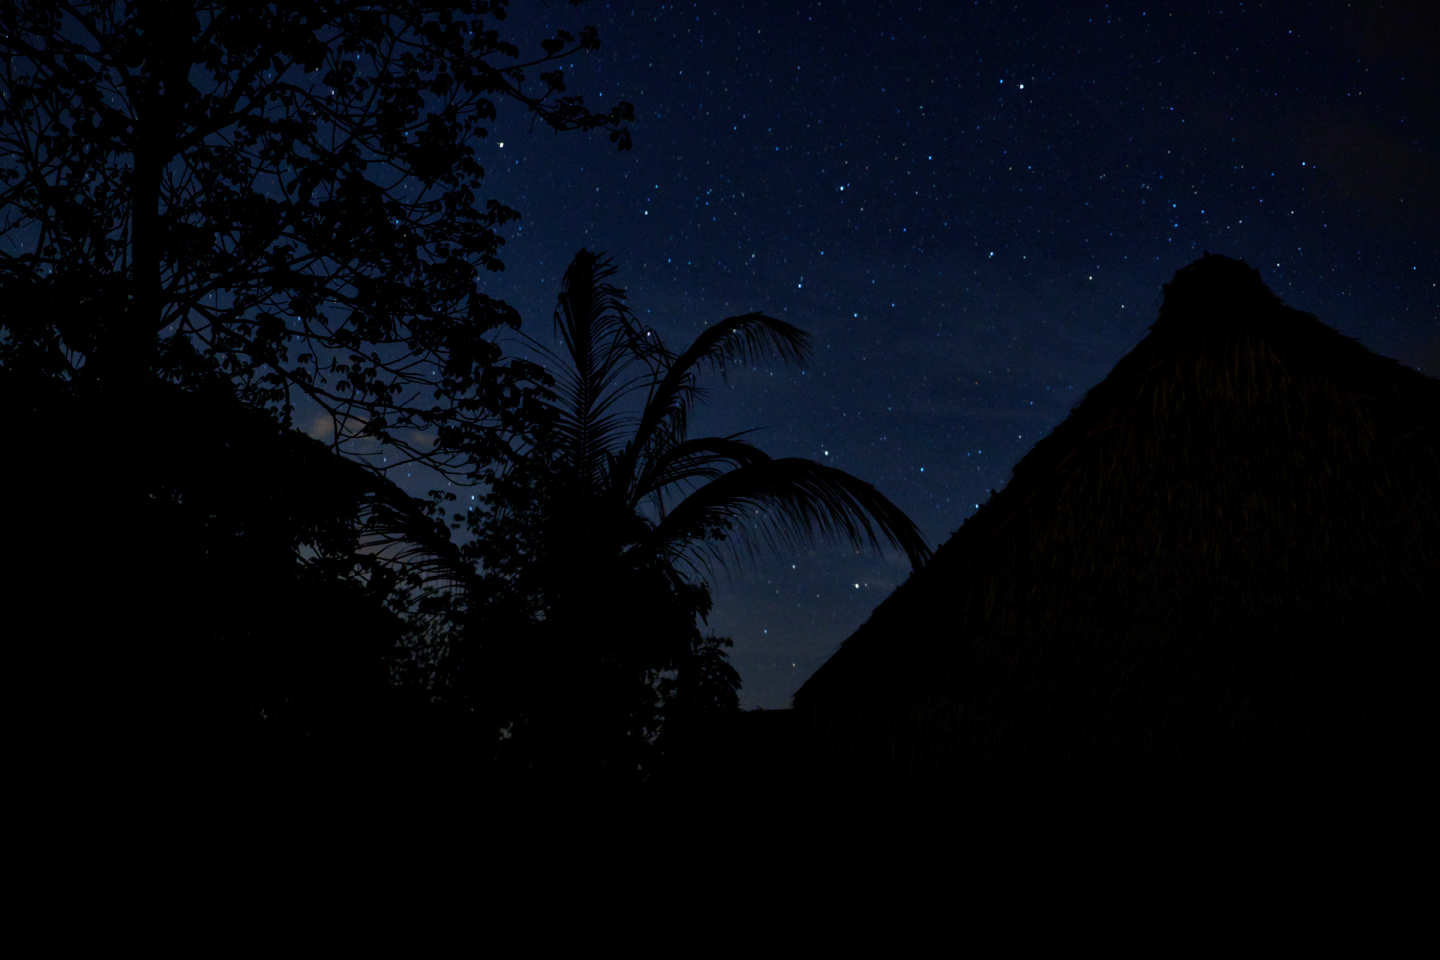 Nightsky in the jungle is mesmerizing